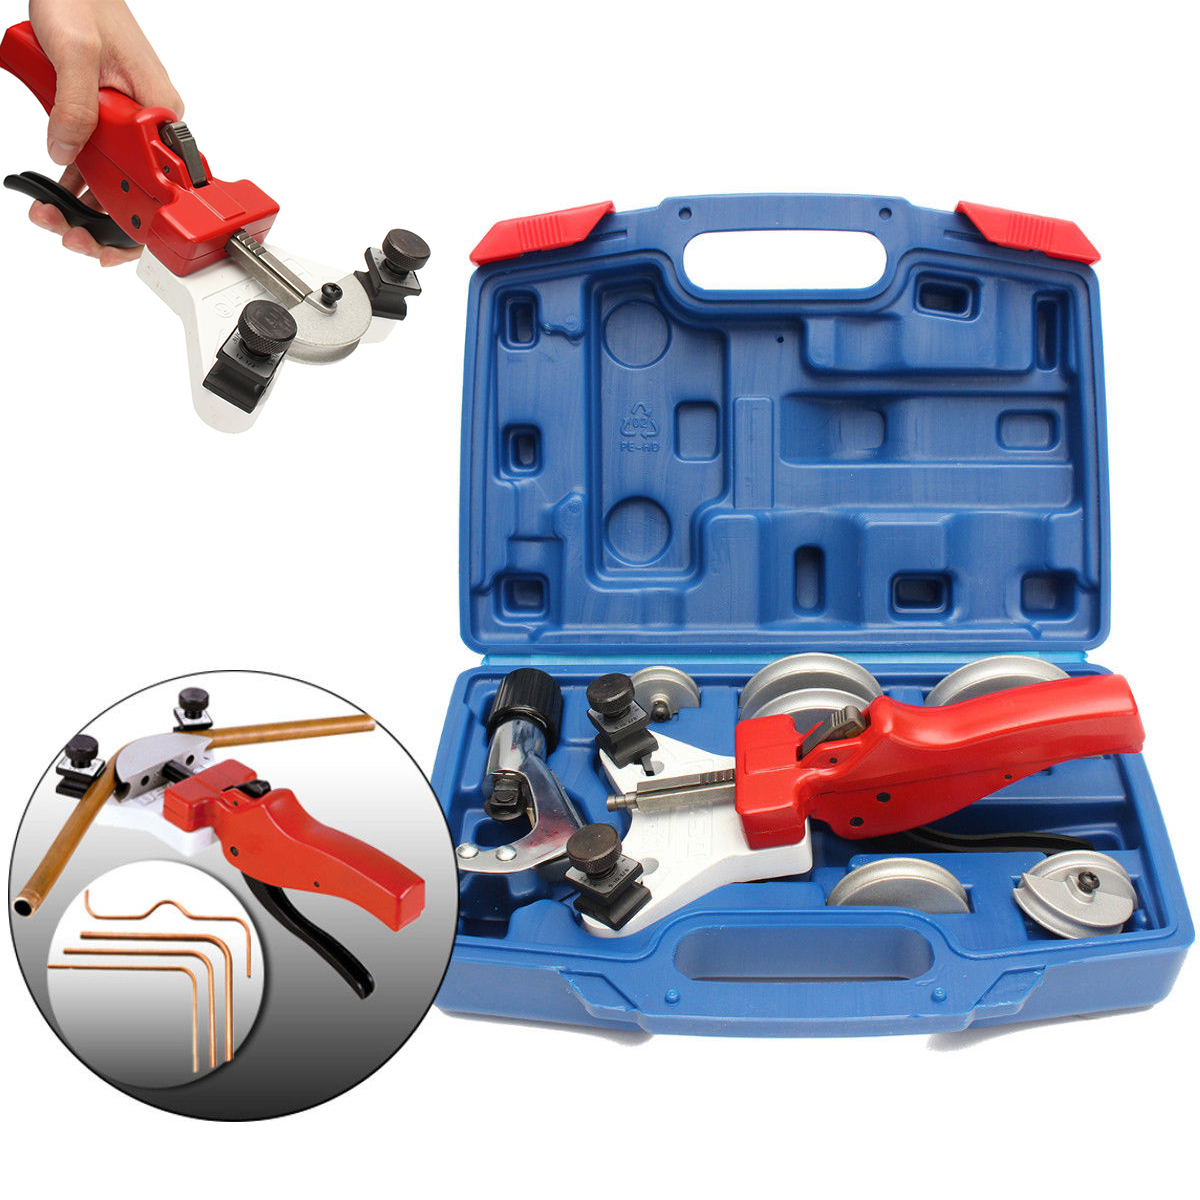 DWZ 1 Set New Heavy Duty 15-22MM Manual Steel Pipe Tube Bender Copper Cutter Machine 7 42mm heavy duty tube cutter ct 312